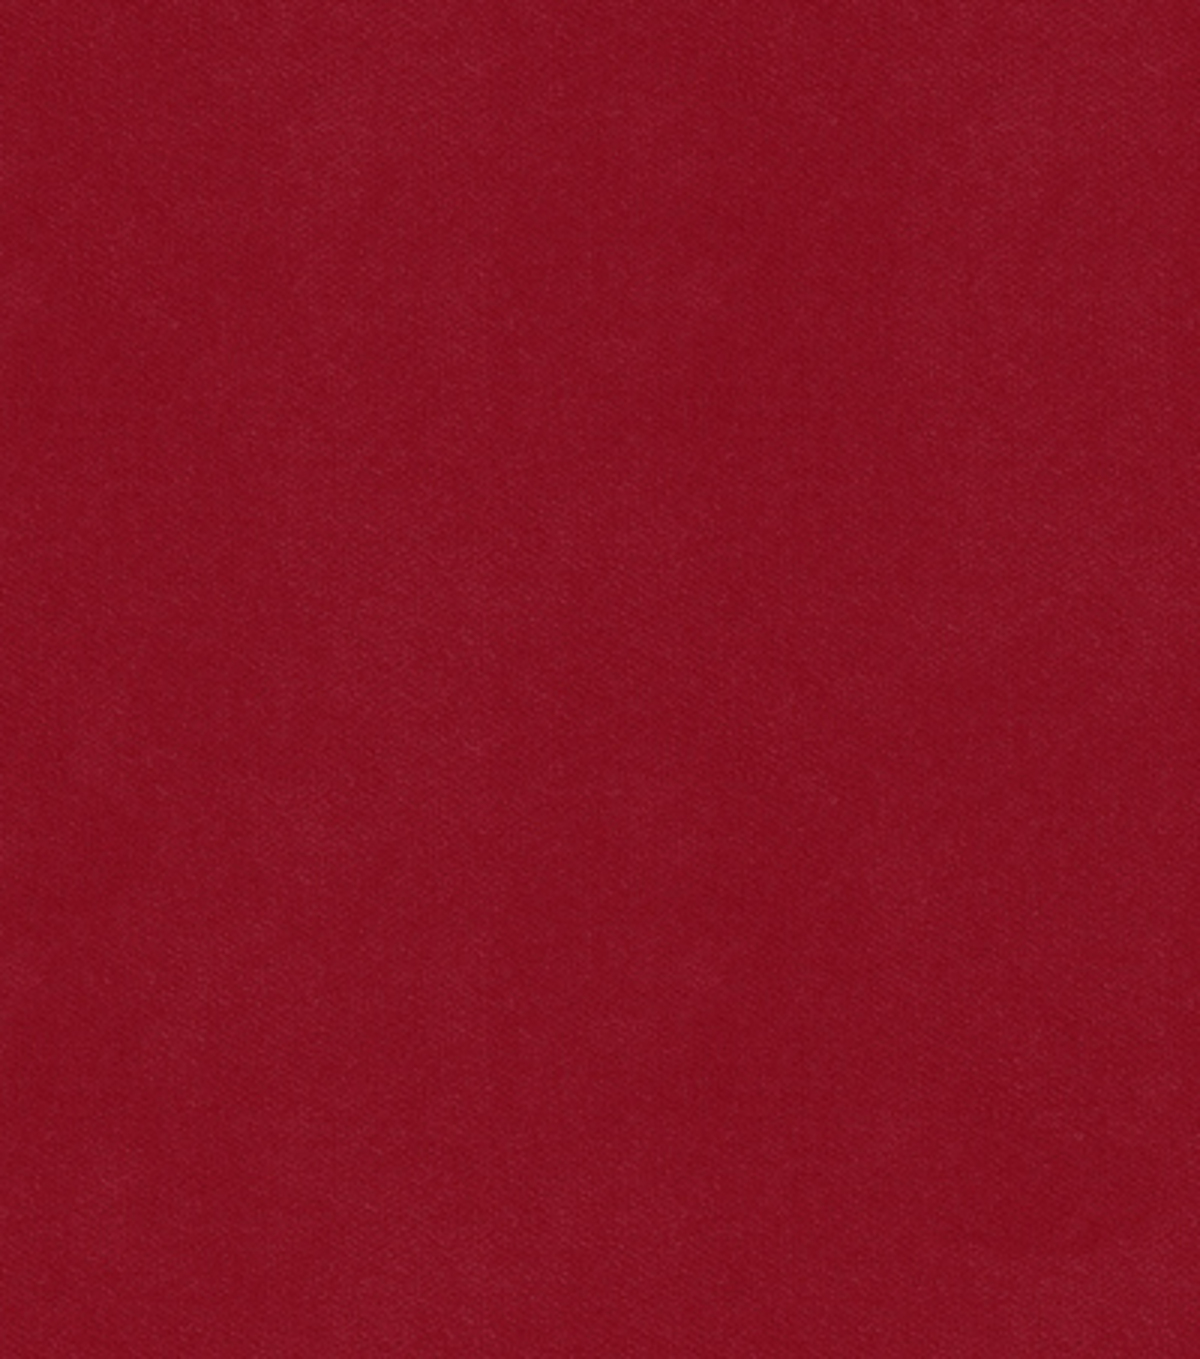 Lightweight Decor Fabric-Como-991-Red